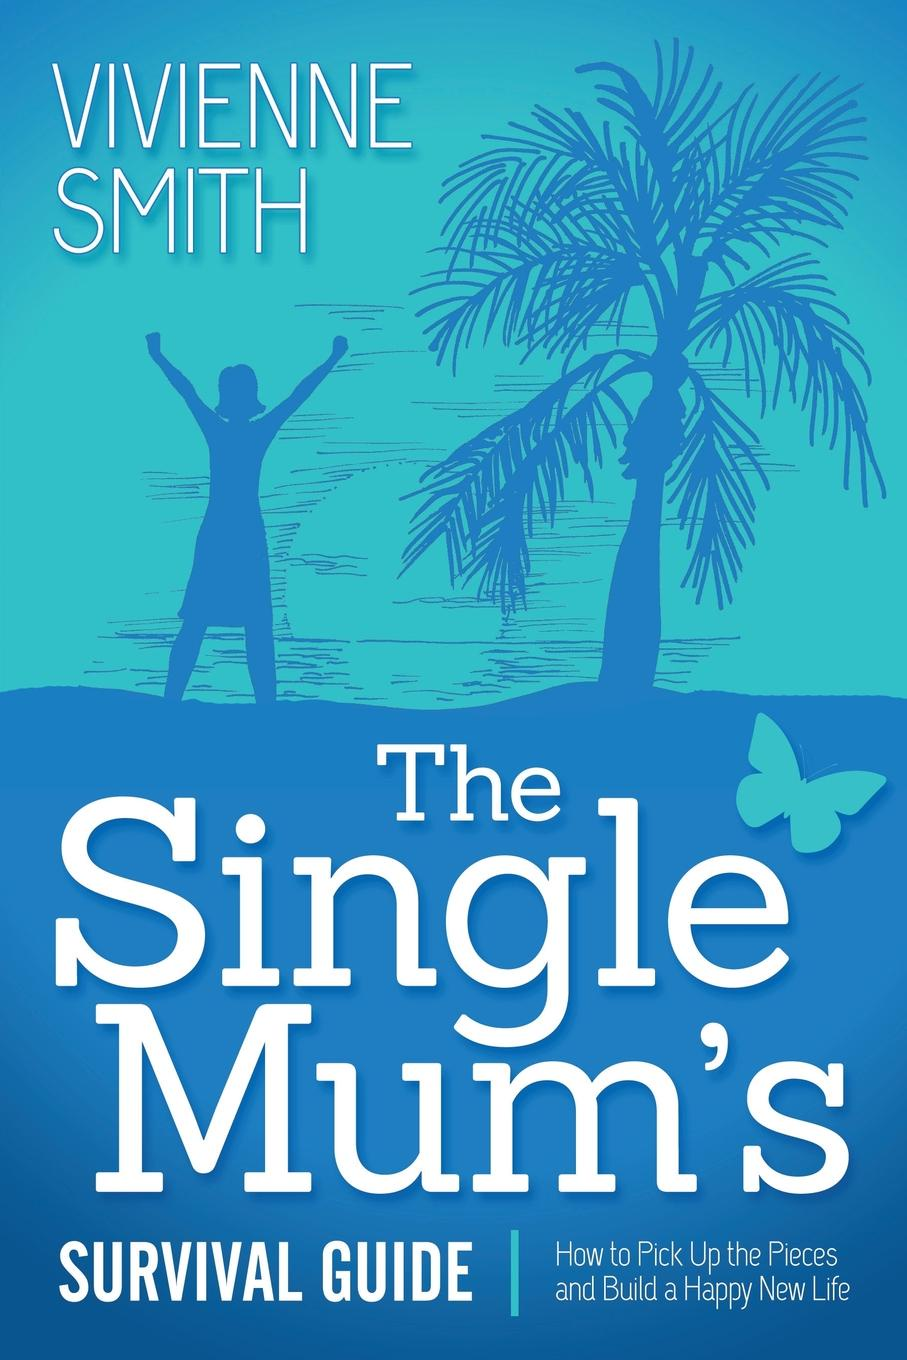 Vivienne Smith The Single Mum's Survival Guide. How to Pick Up the Pieces and Build a Happy New Life rebecca branstetter the school psychologist s survival guide